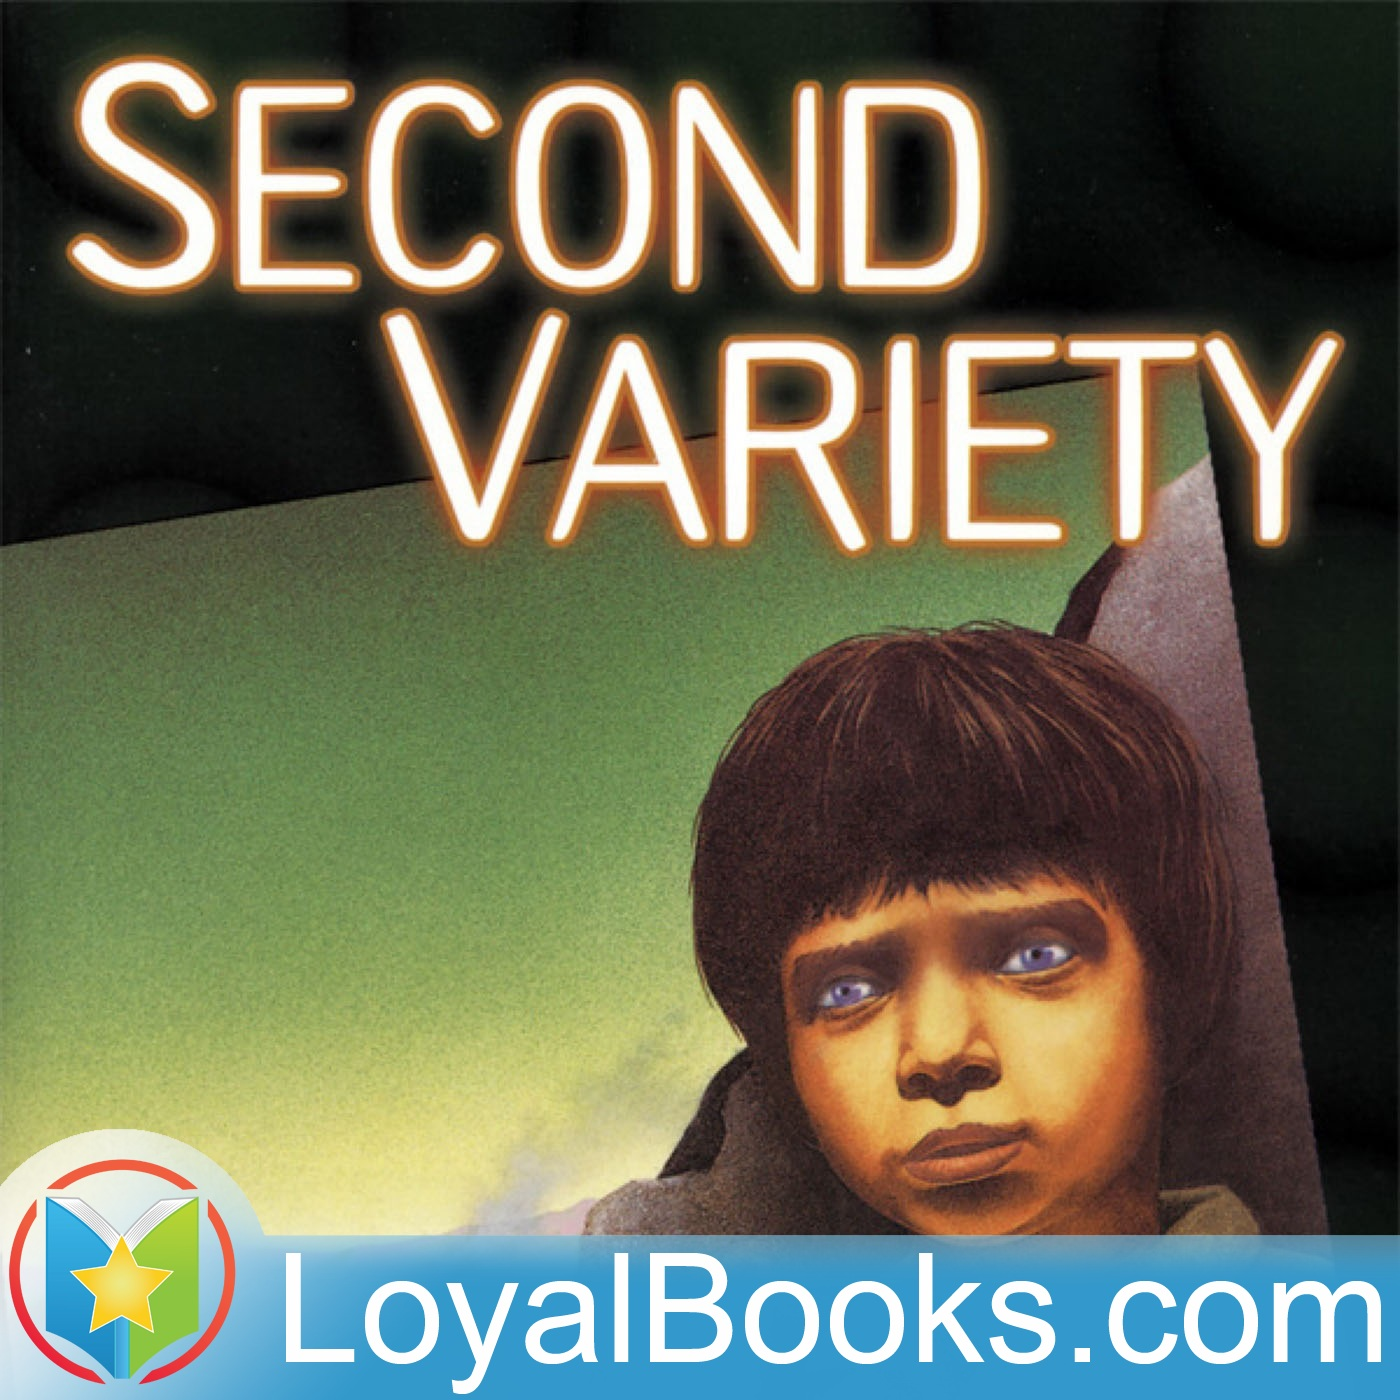 <![CDATA[Second Variety by Philip K. Dick]]>